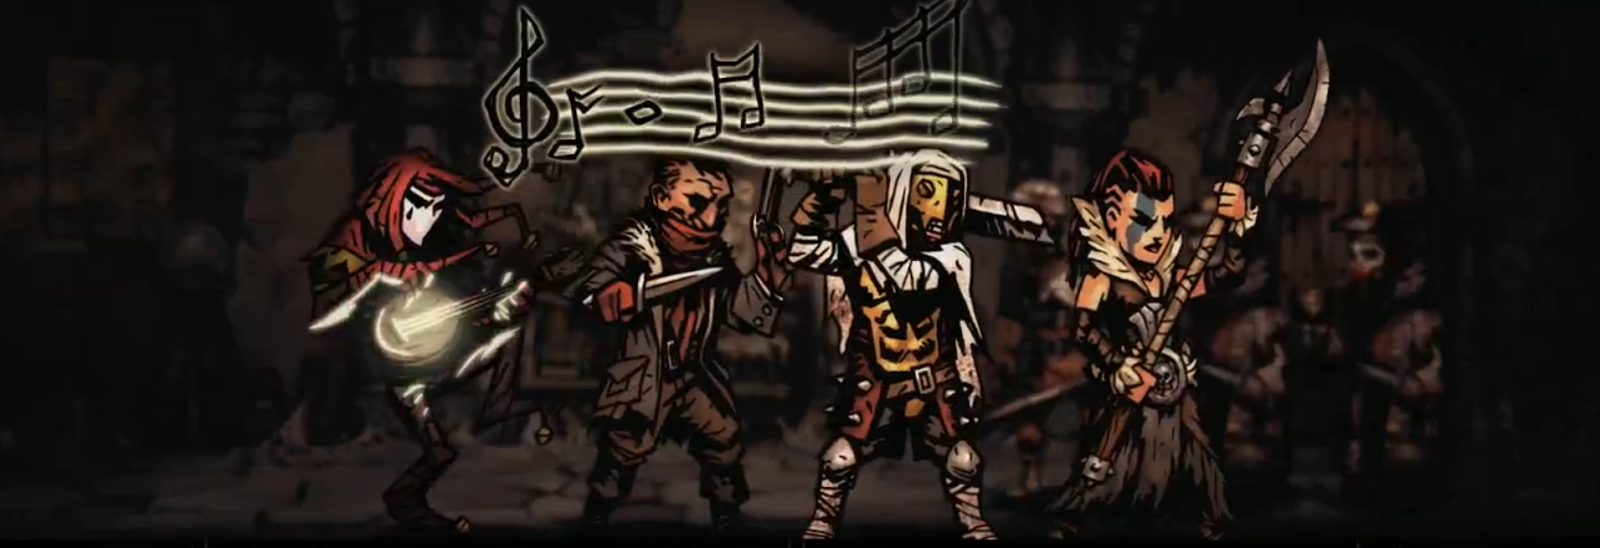 A line-up of Darkest Dungeon character types, with the Jester doing his thing on the far left